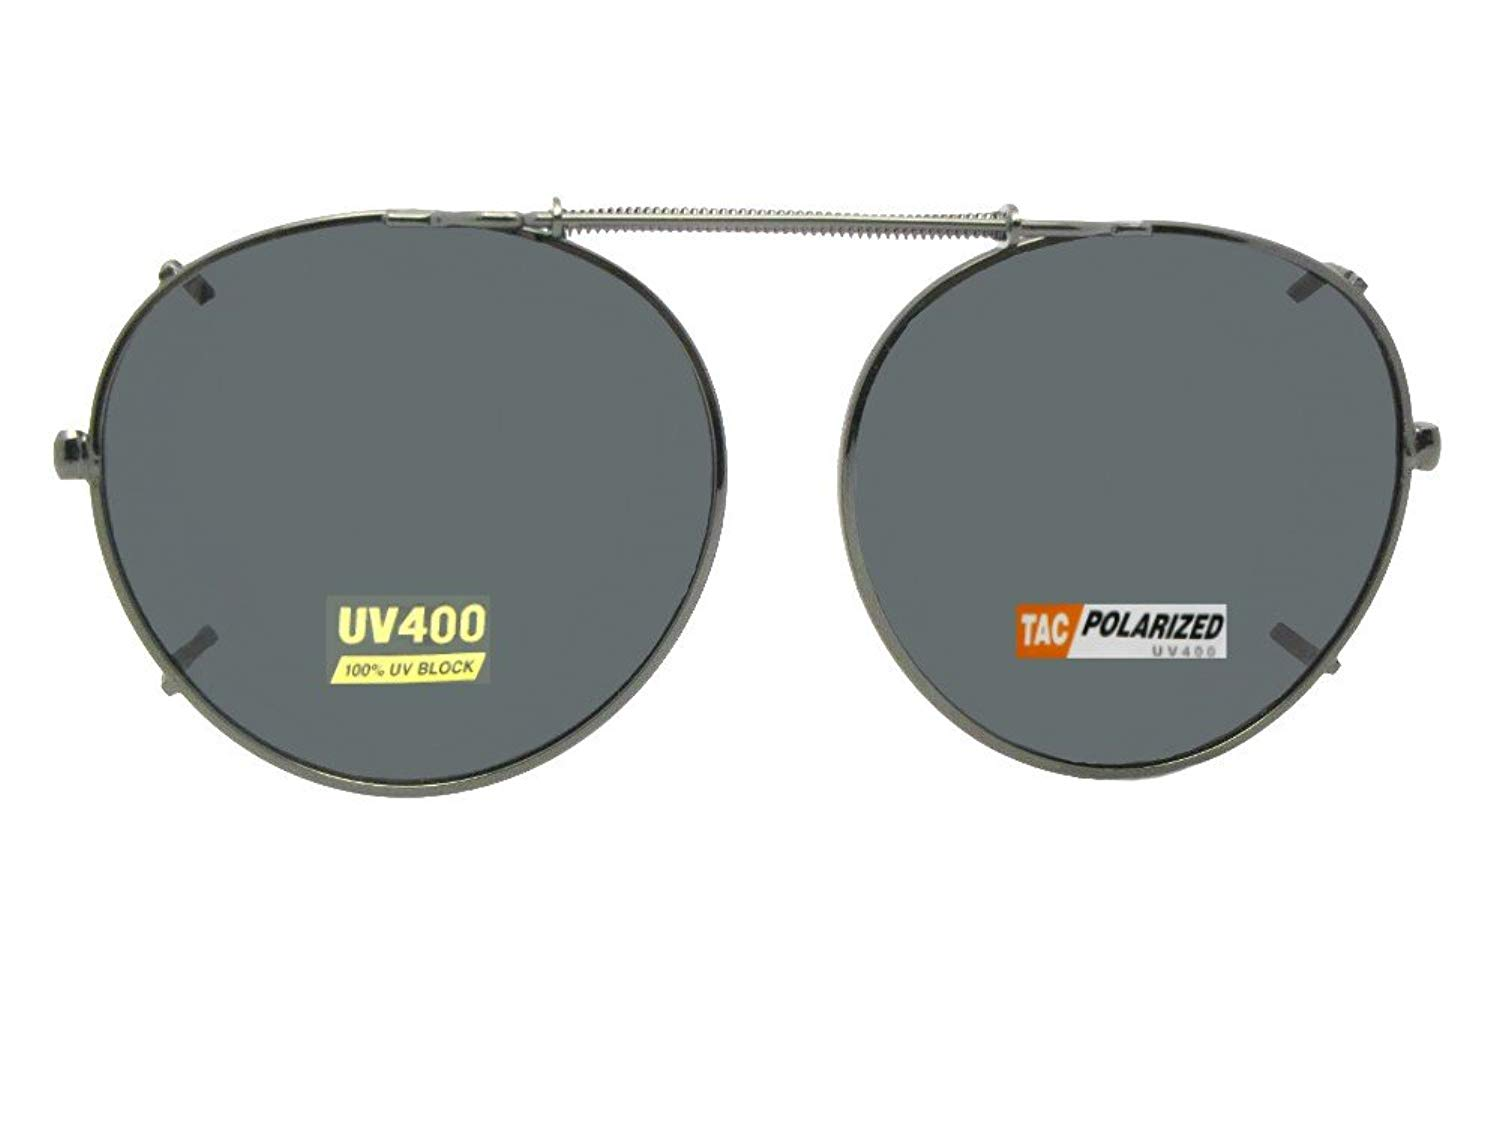 603d2b0facd Get Quotations · Sunglass Rage Semi Round Polarized Clip on Sunglasses